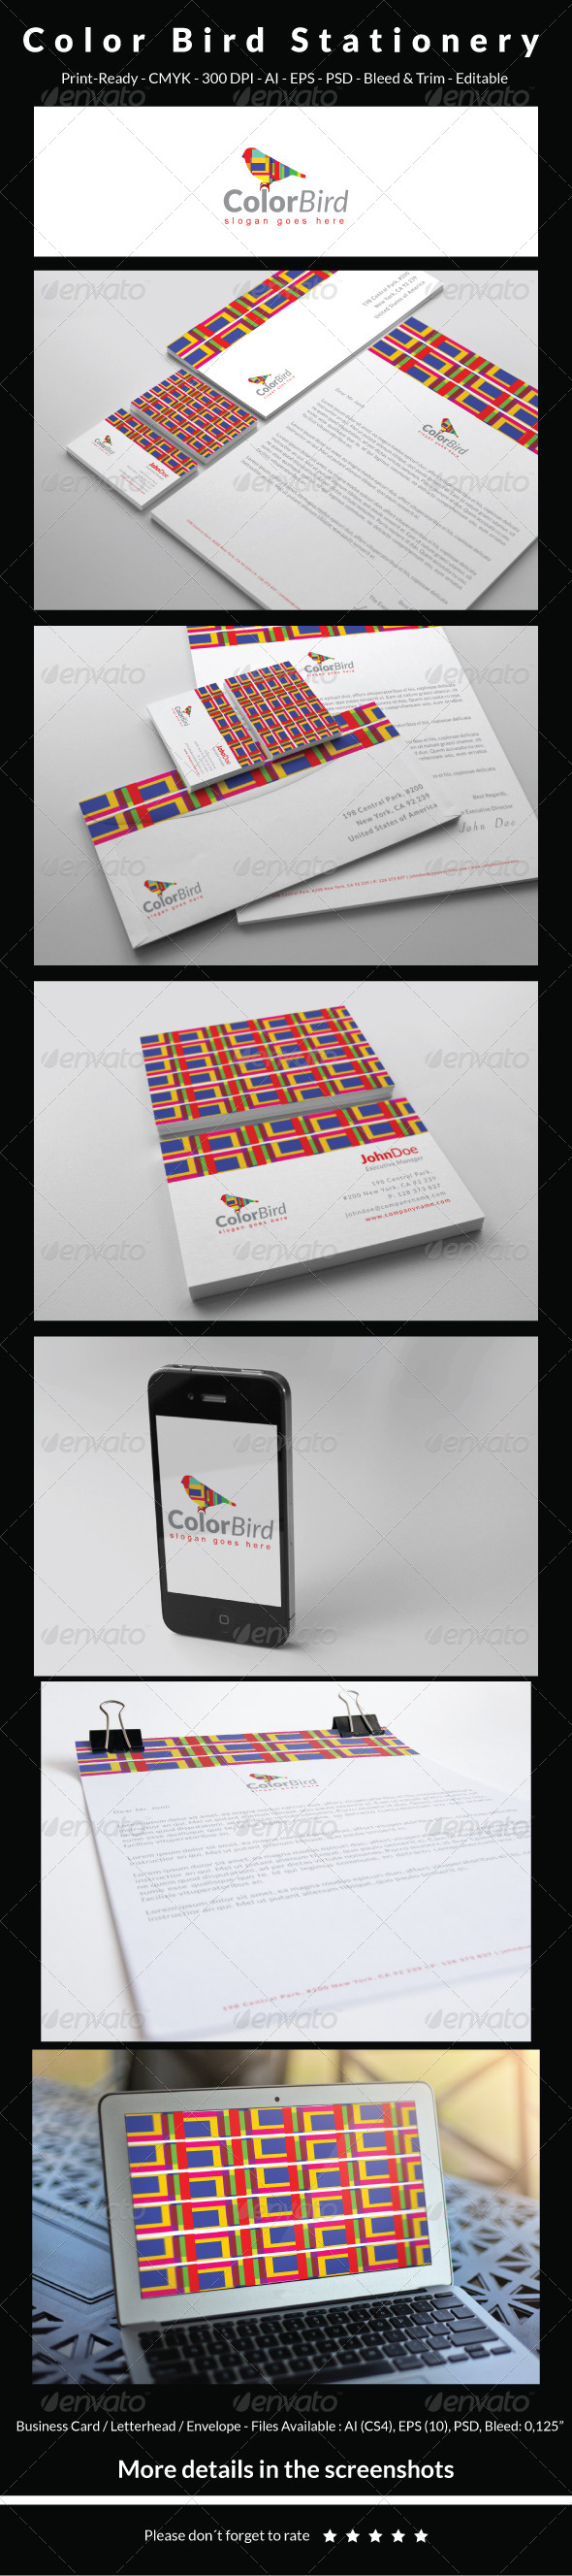 Color Bird Stationery - Stationery Print Templates